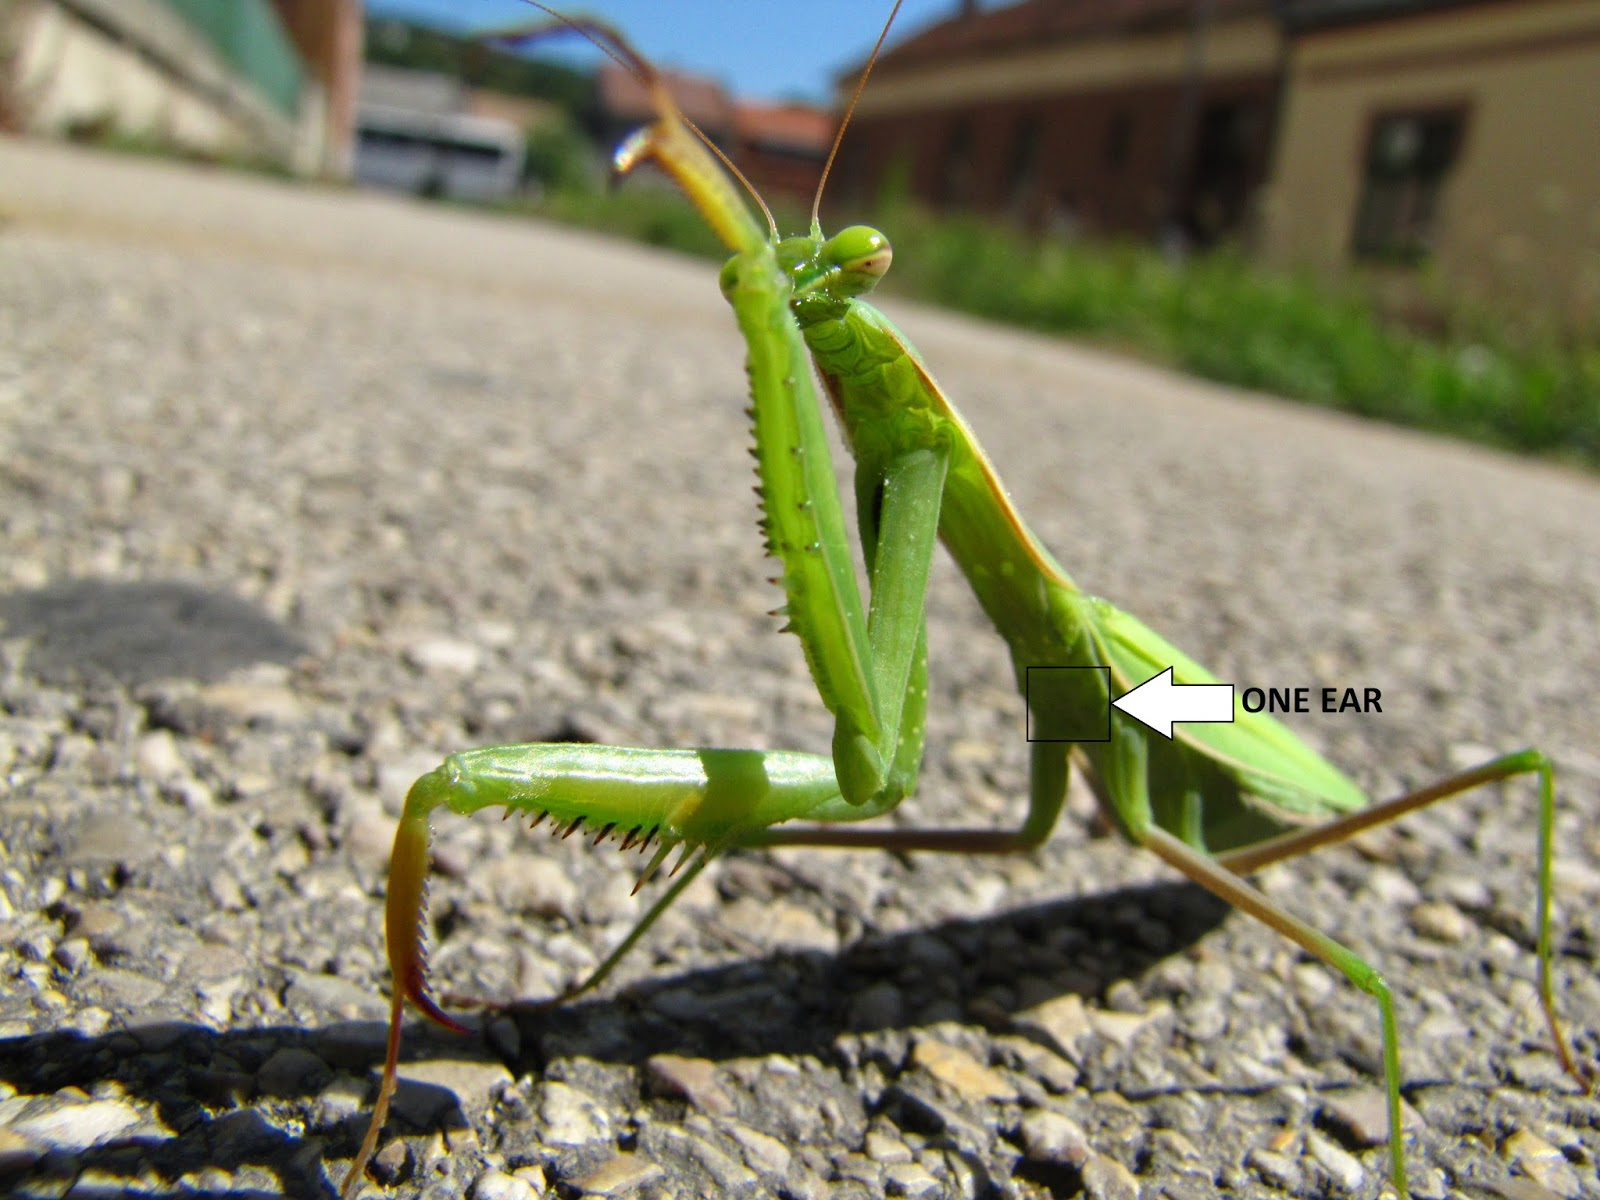 Picture of the one ear of a pray mantis.